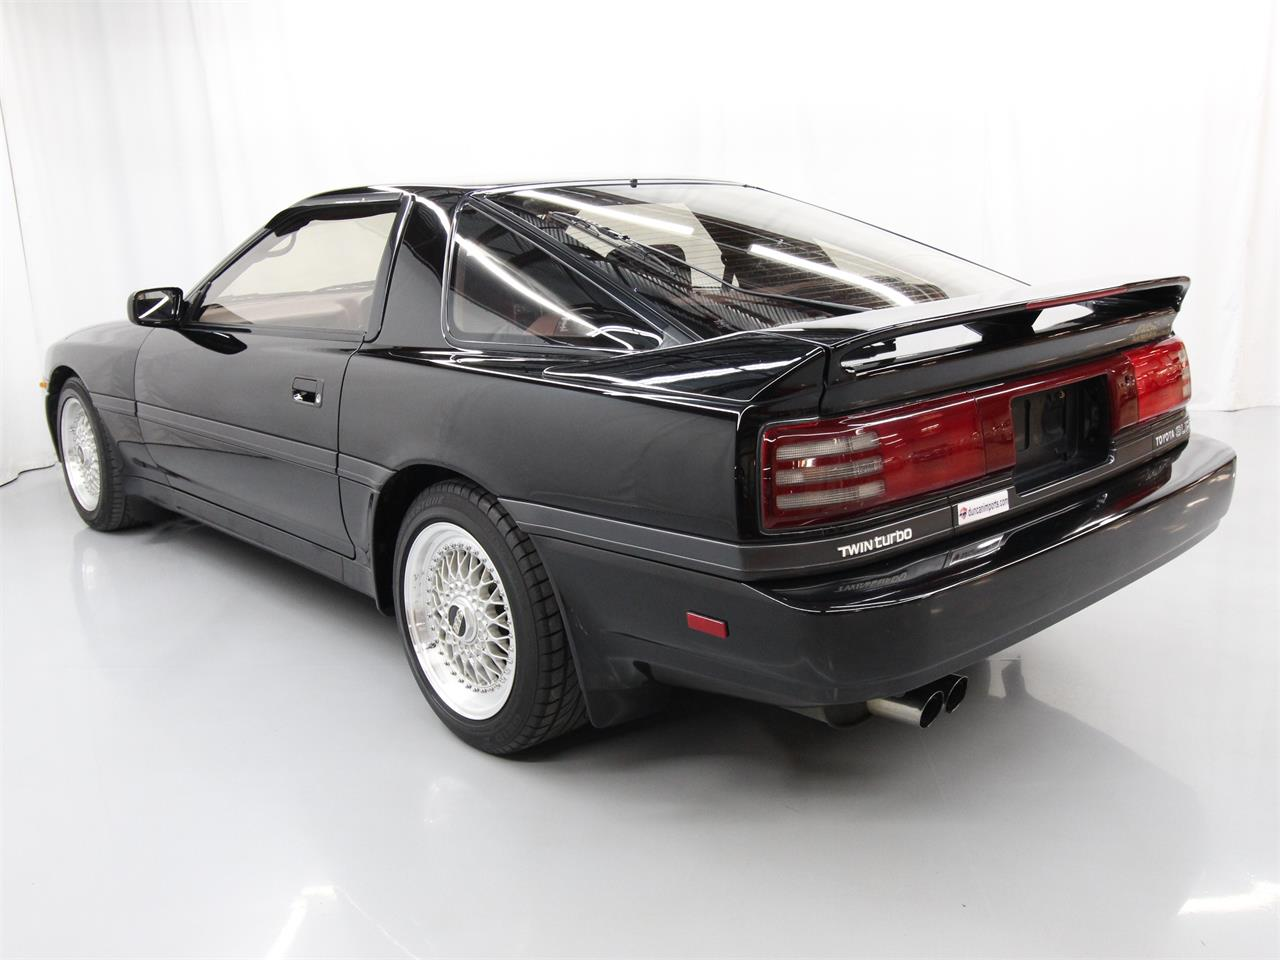 Large Picture of '91 Toyota Supra - $16,973.00 Offered by Duncan Imports & Classic Cars - Q9SQ